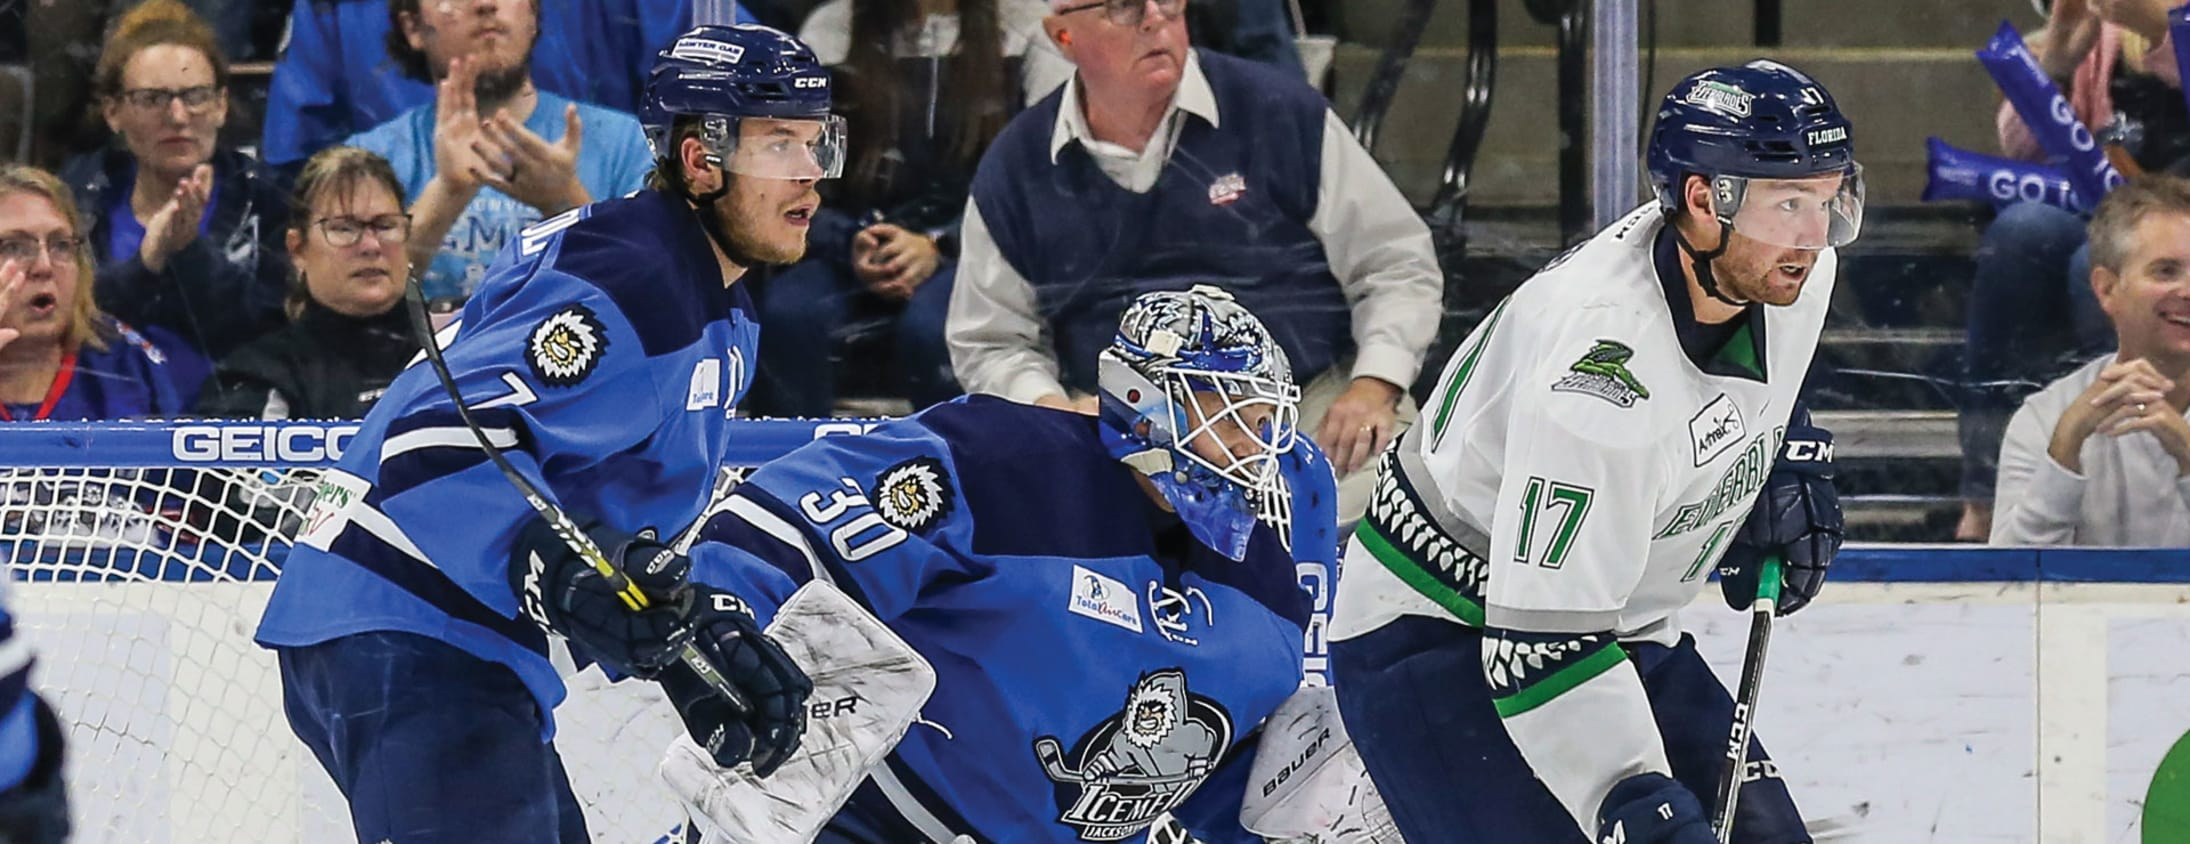 Everblades Defeat Jacksonville In Game 6 To Reach Division Finals